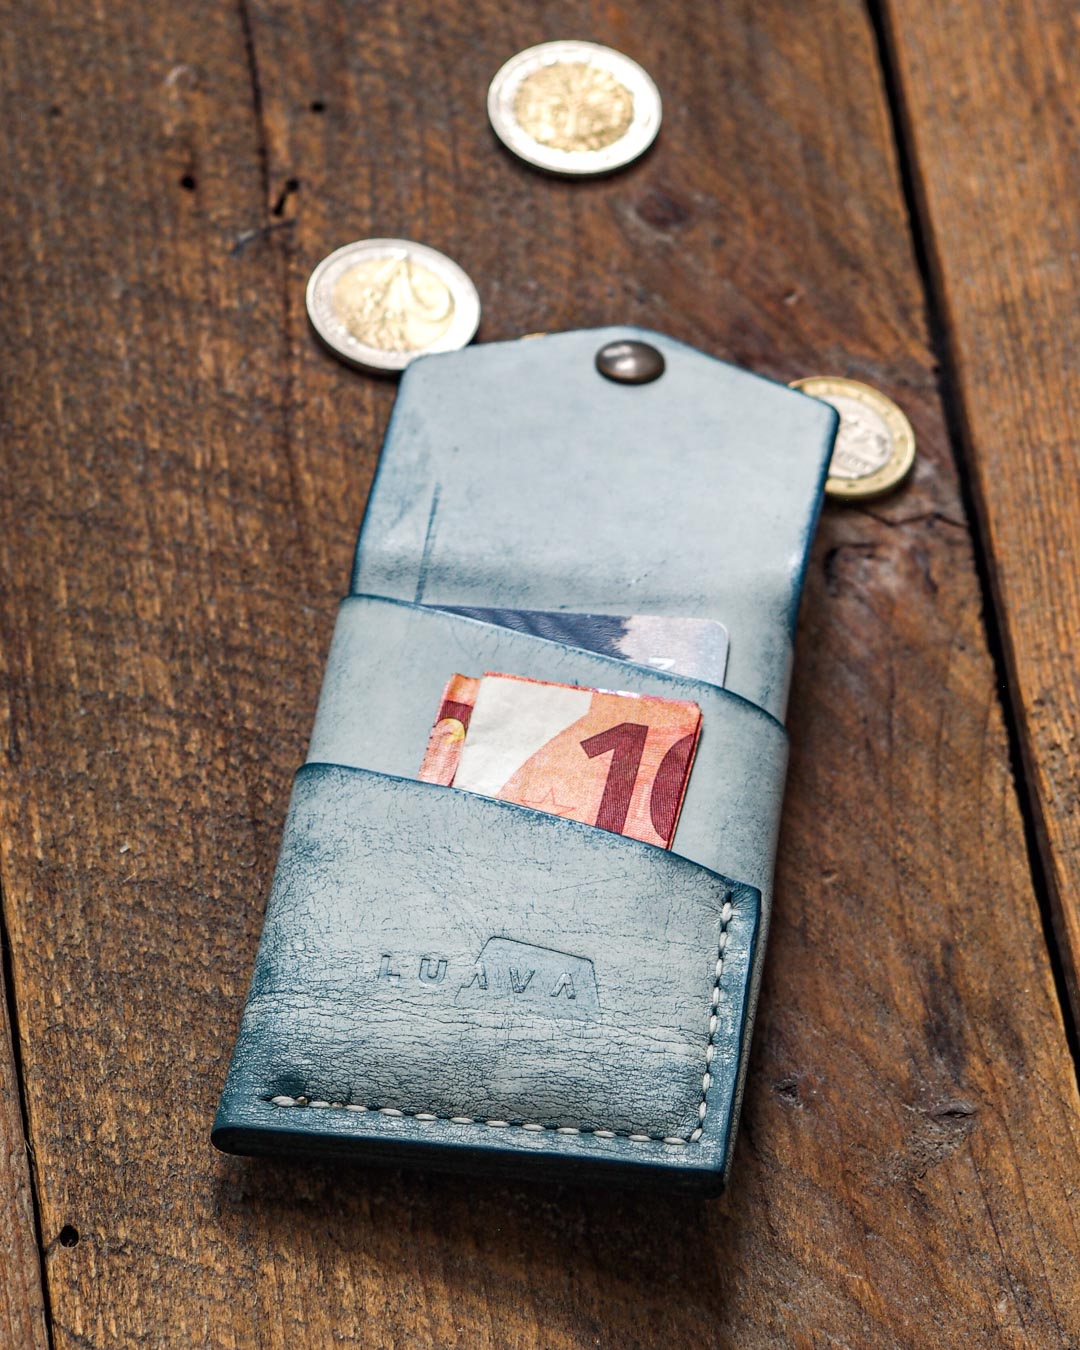 Luava handcrafted leather overfold wallet ghost ocean conceria la bretagna cardholder card holder handmade in finland angle back open in use